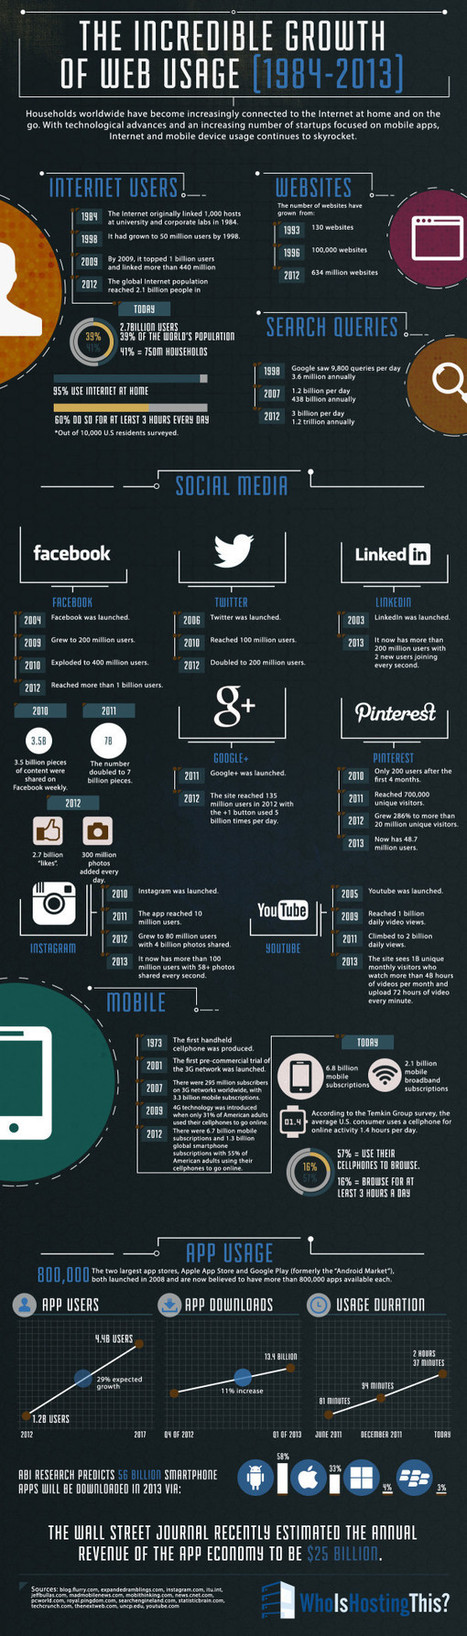 Internet and technology: A history of growth (1984-2013) | The Future of Social Media: Trends, Signals, Analysis, News | Scoop.it